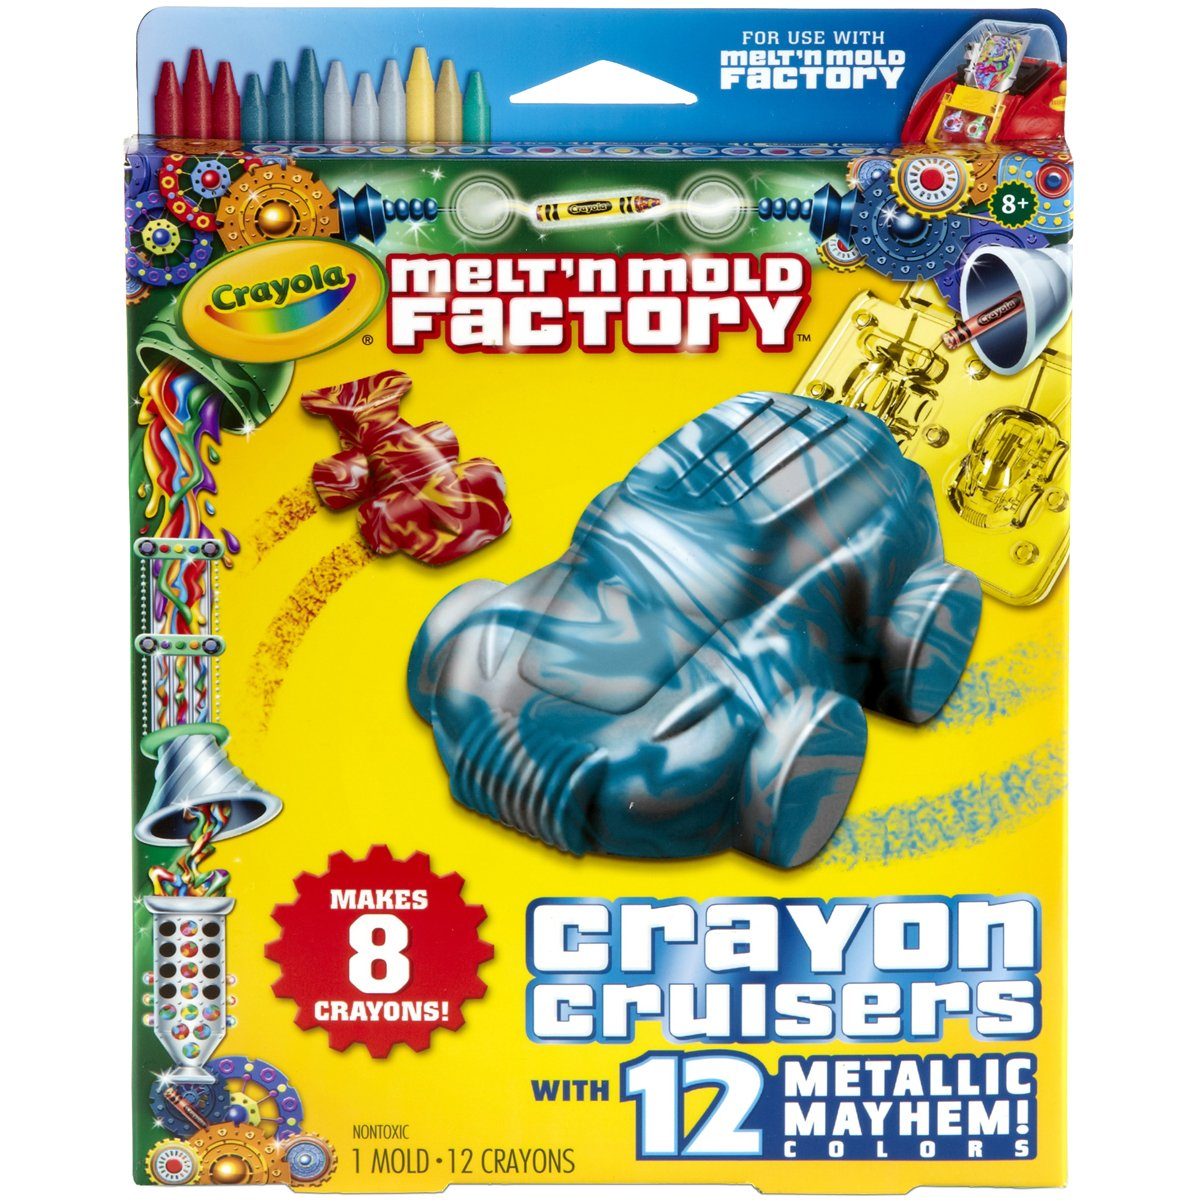 Crayola Melt 'N Mold Crayon Cruiser Expansion Pack